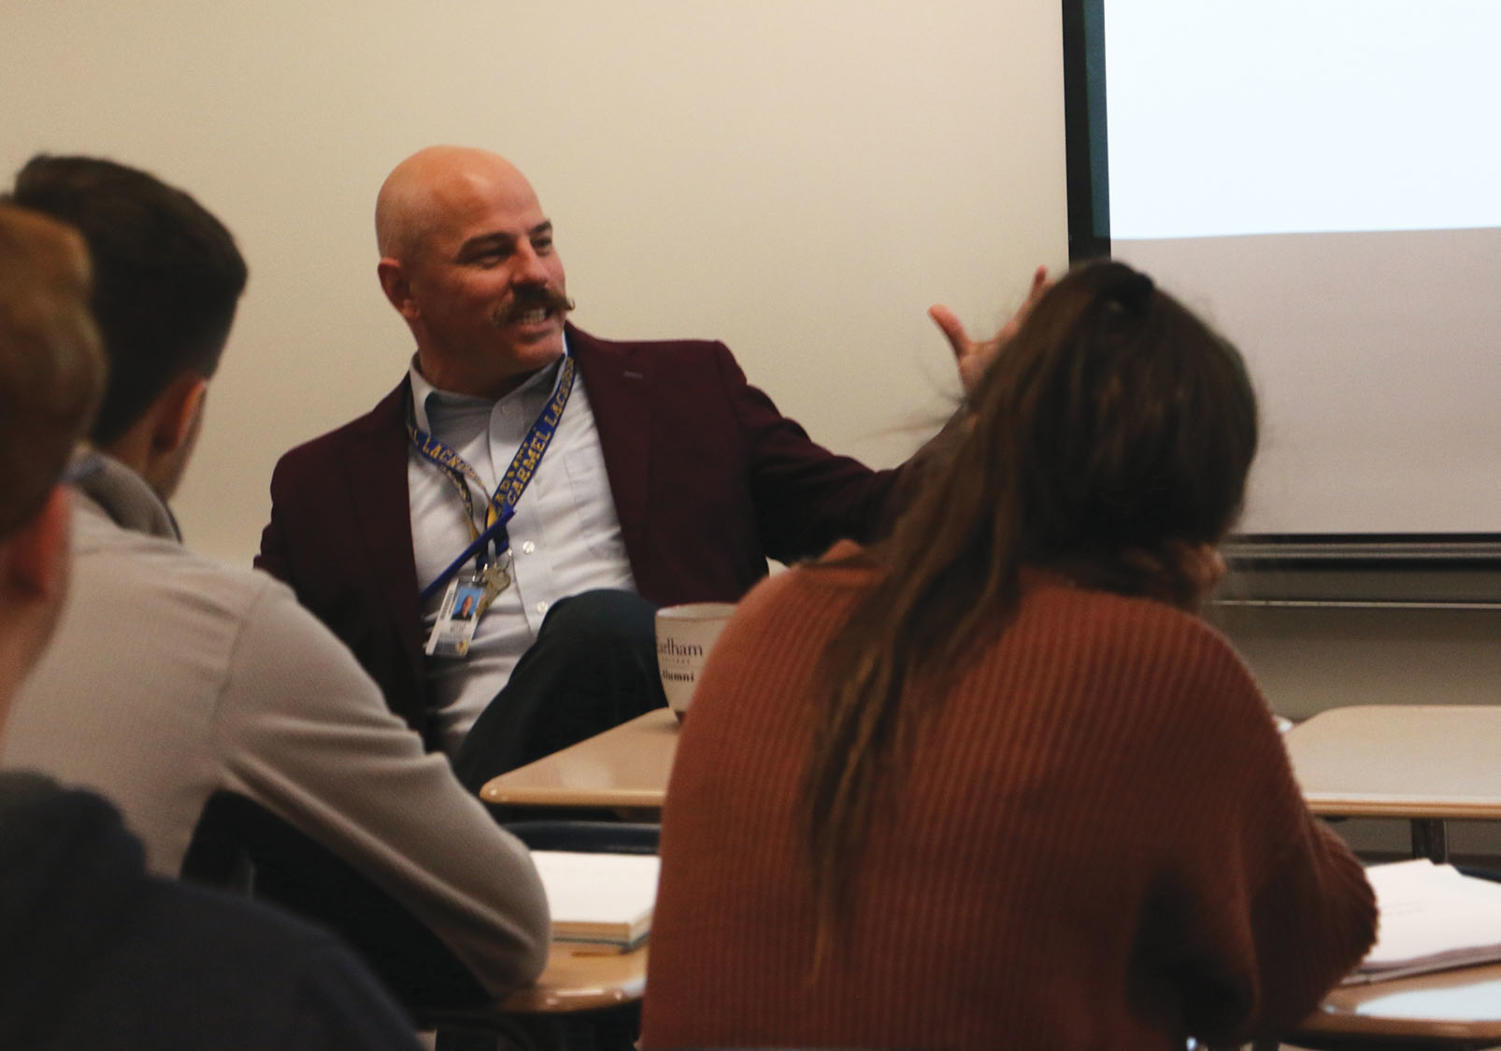 Special Speakers: Social studies teacher Joshua Miller lectures in his class on Feb. 13. The class was learning about the role of media, which Miller said plays a part in civic literacy today.